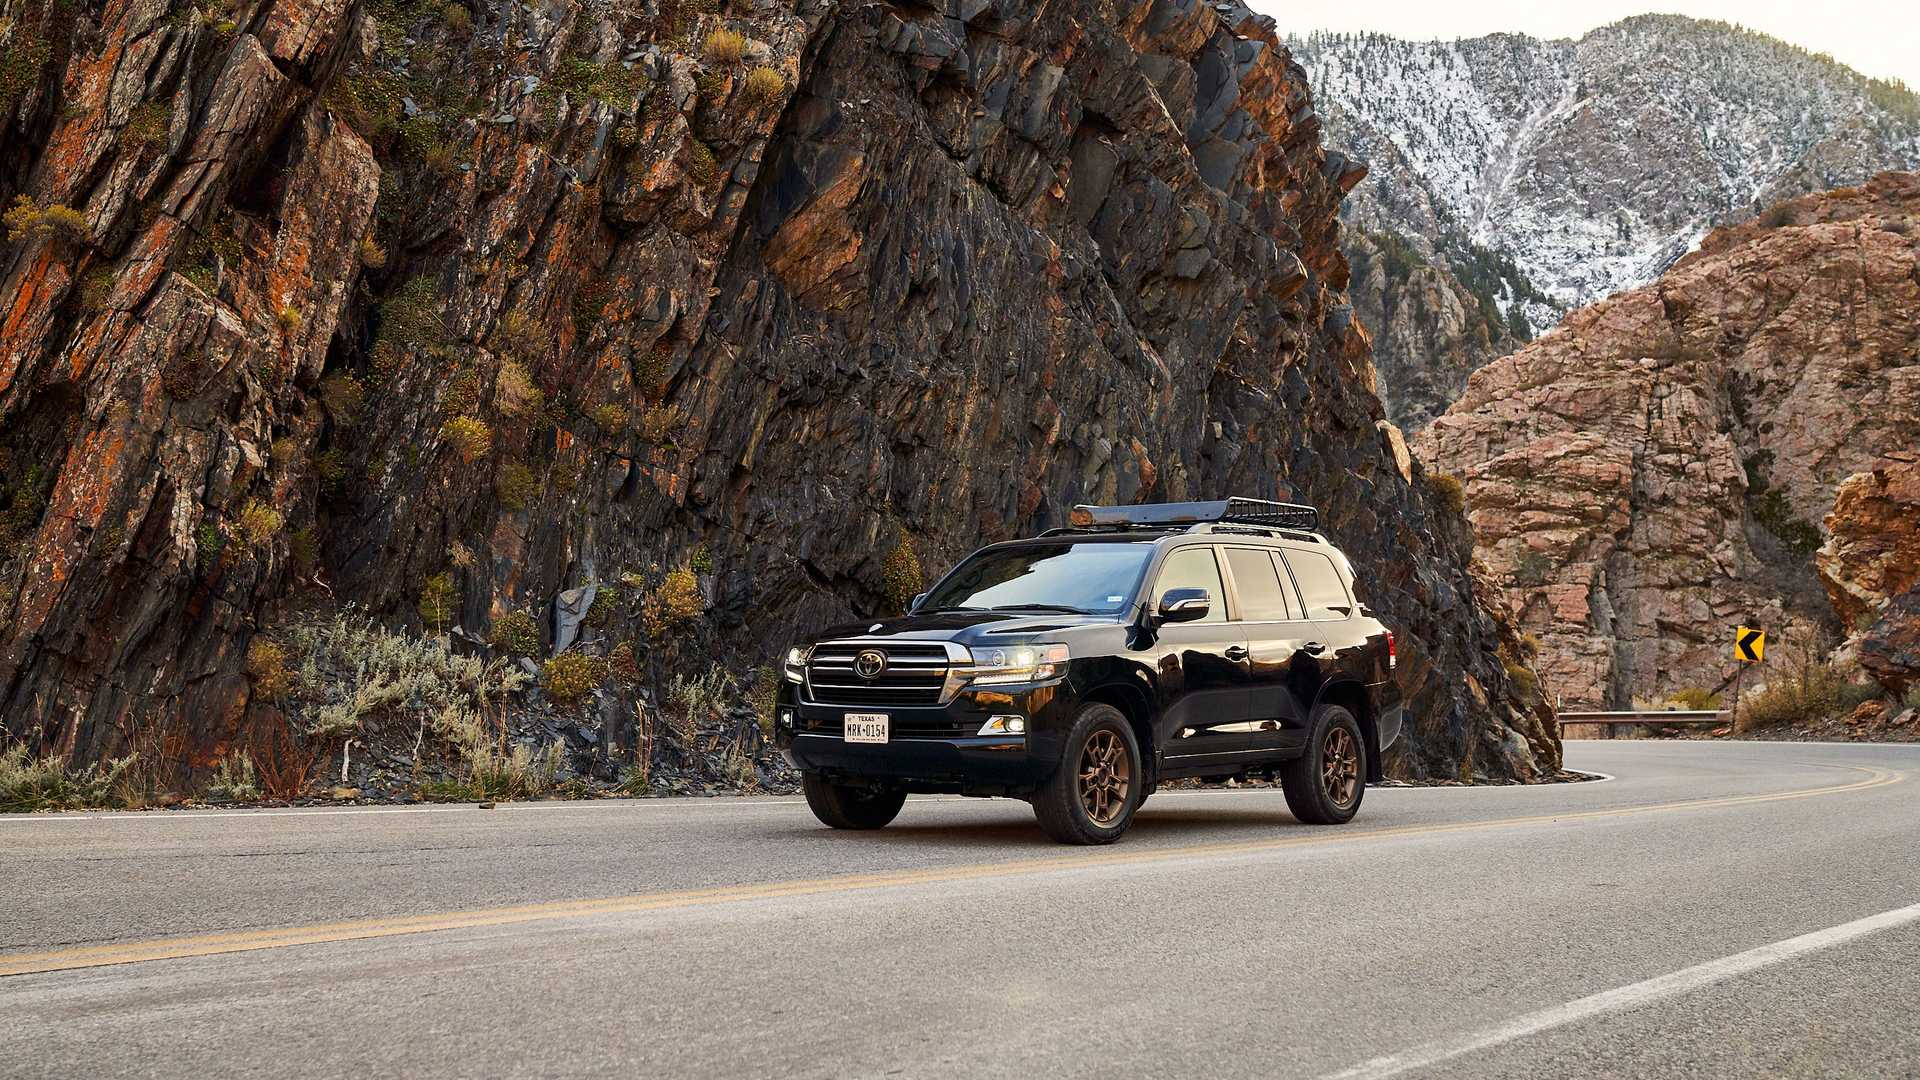 2021-toyota-land-cruiser-front-road